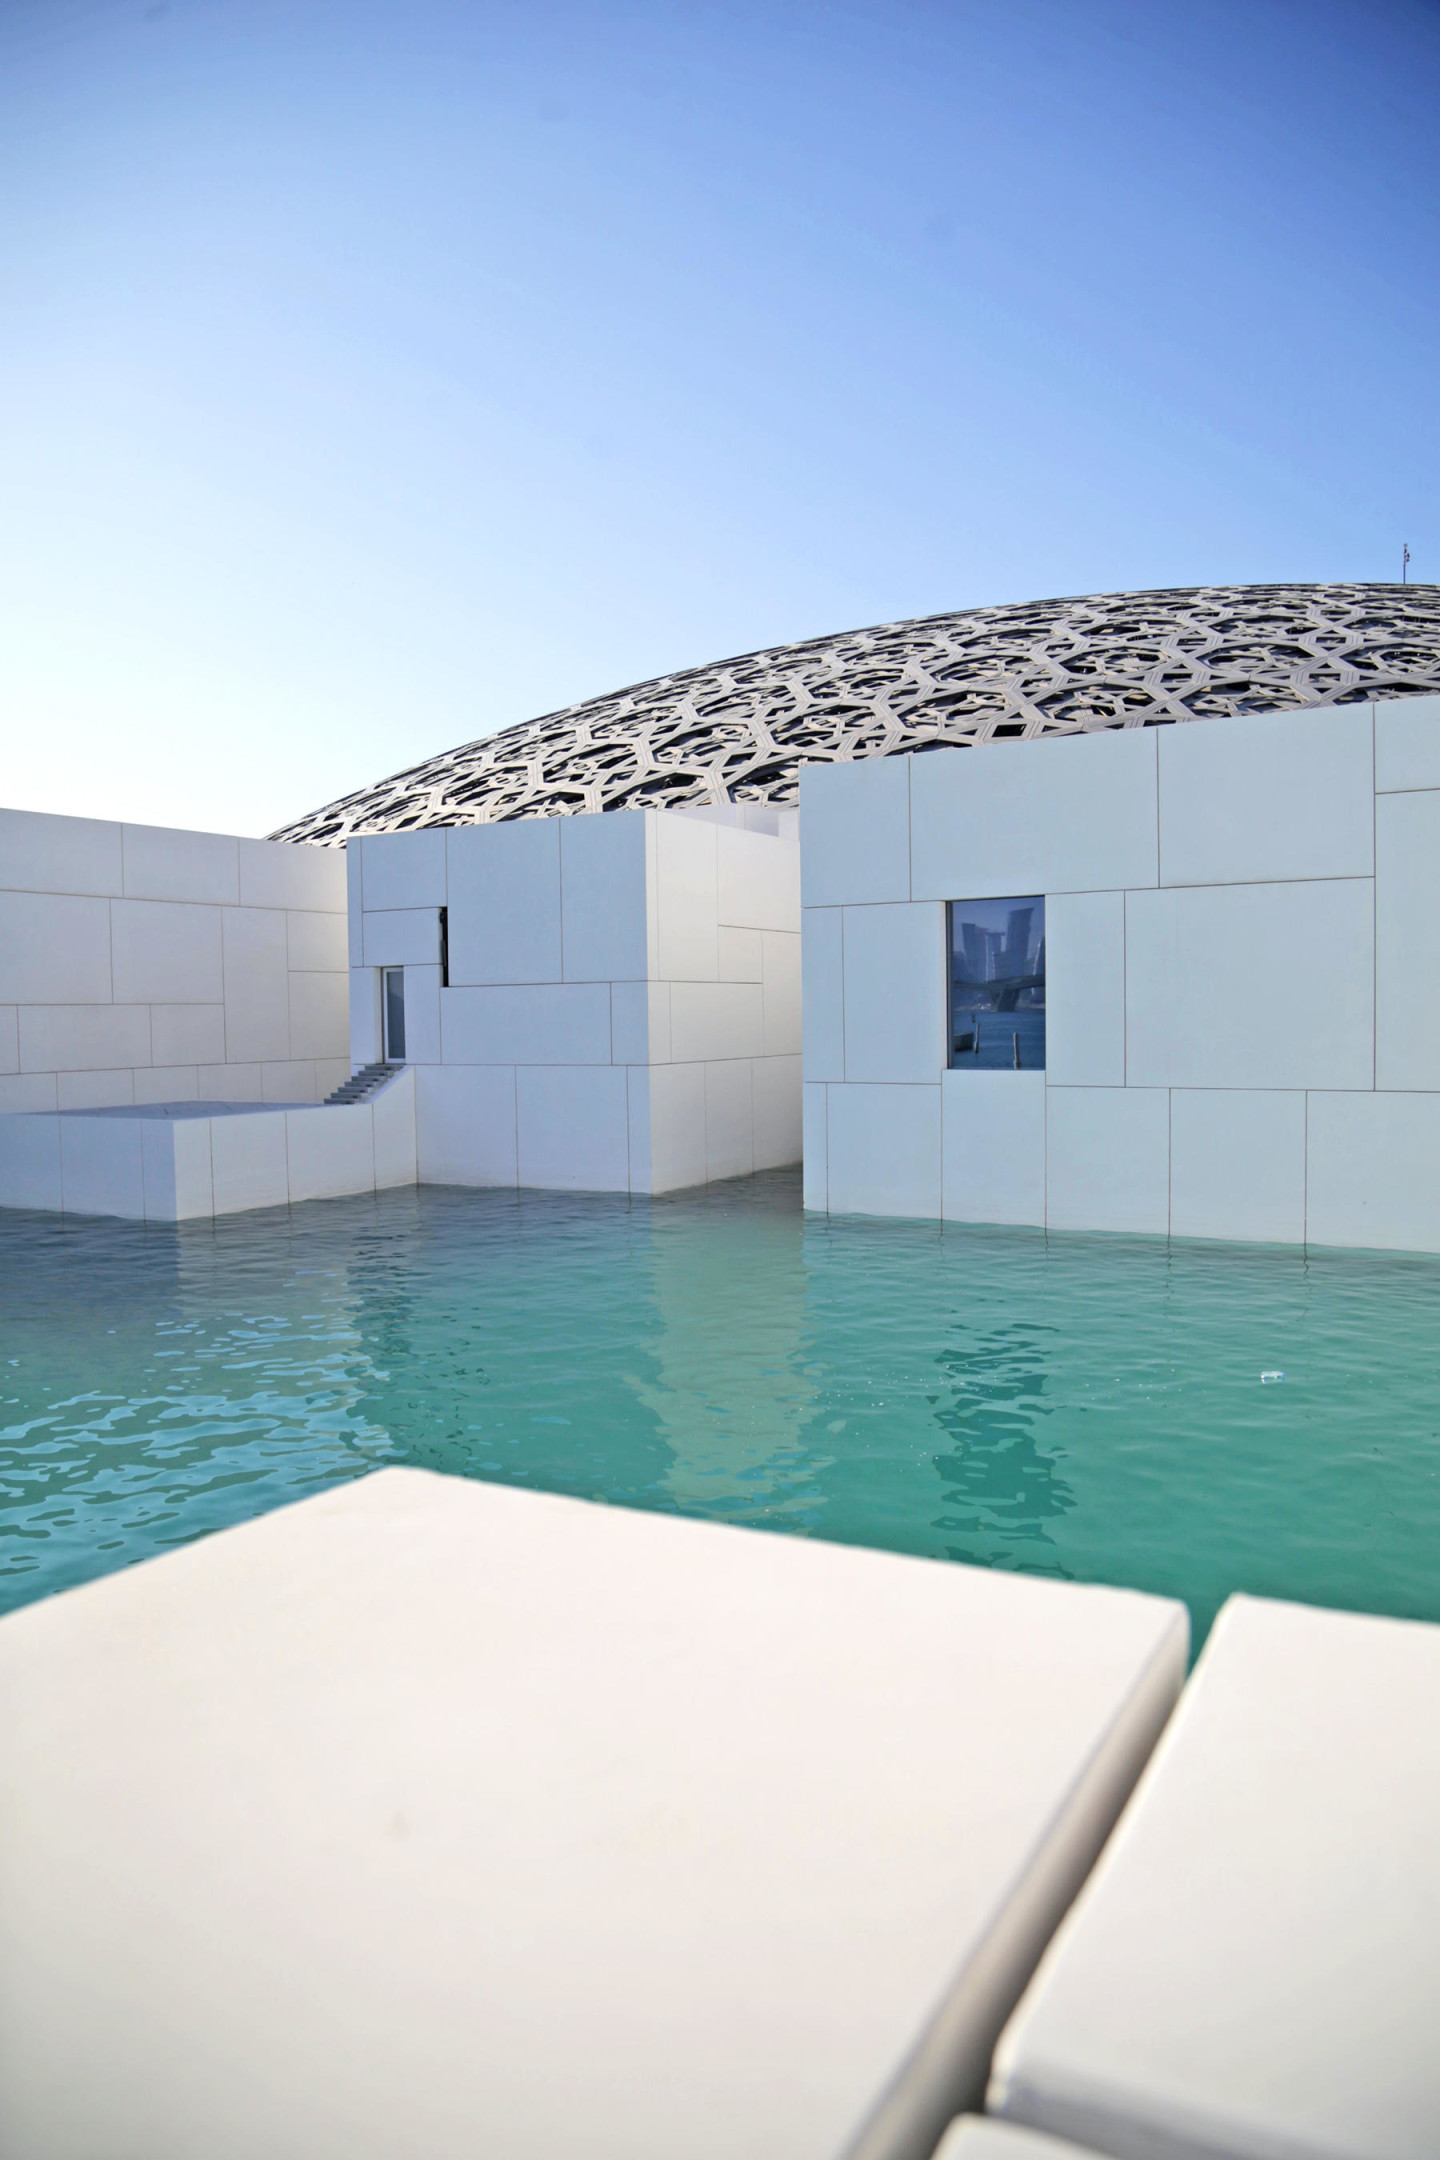 Abu Dhabi Louvres Museum architecture